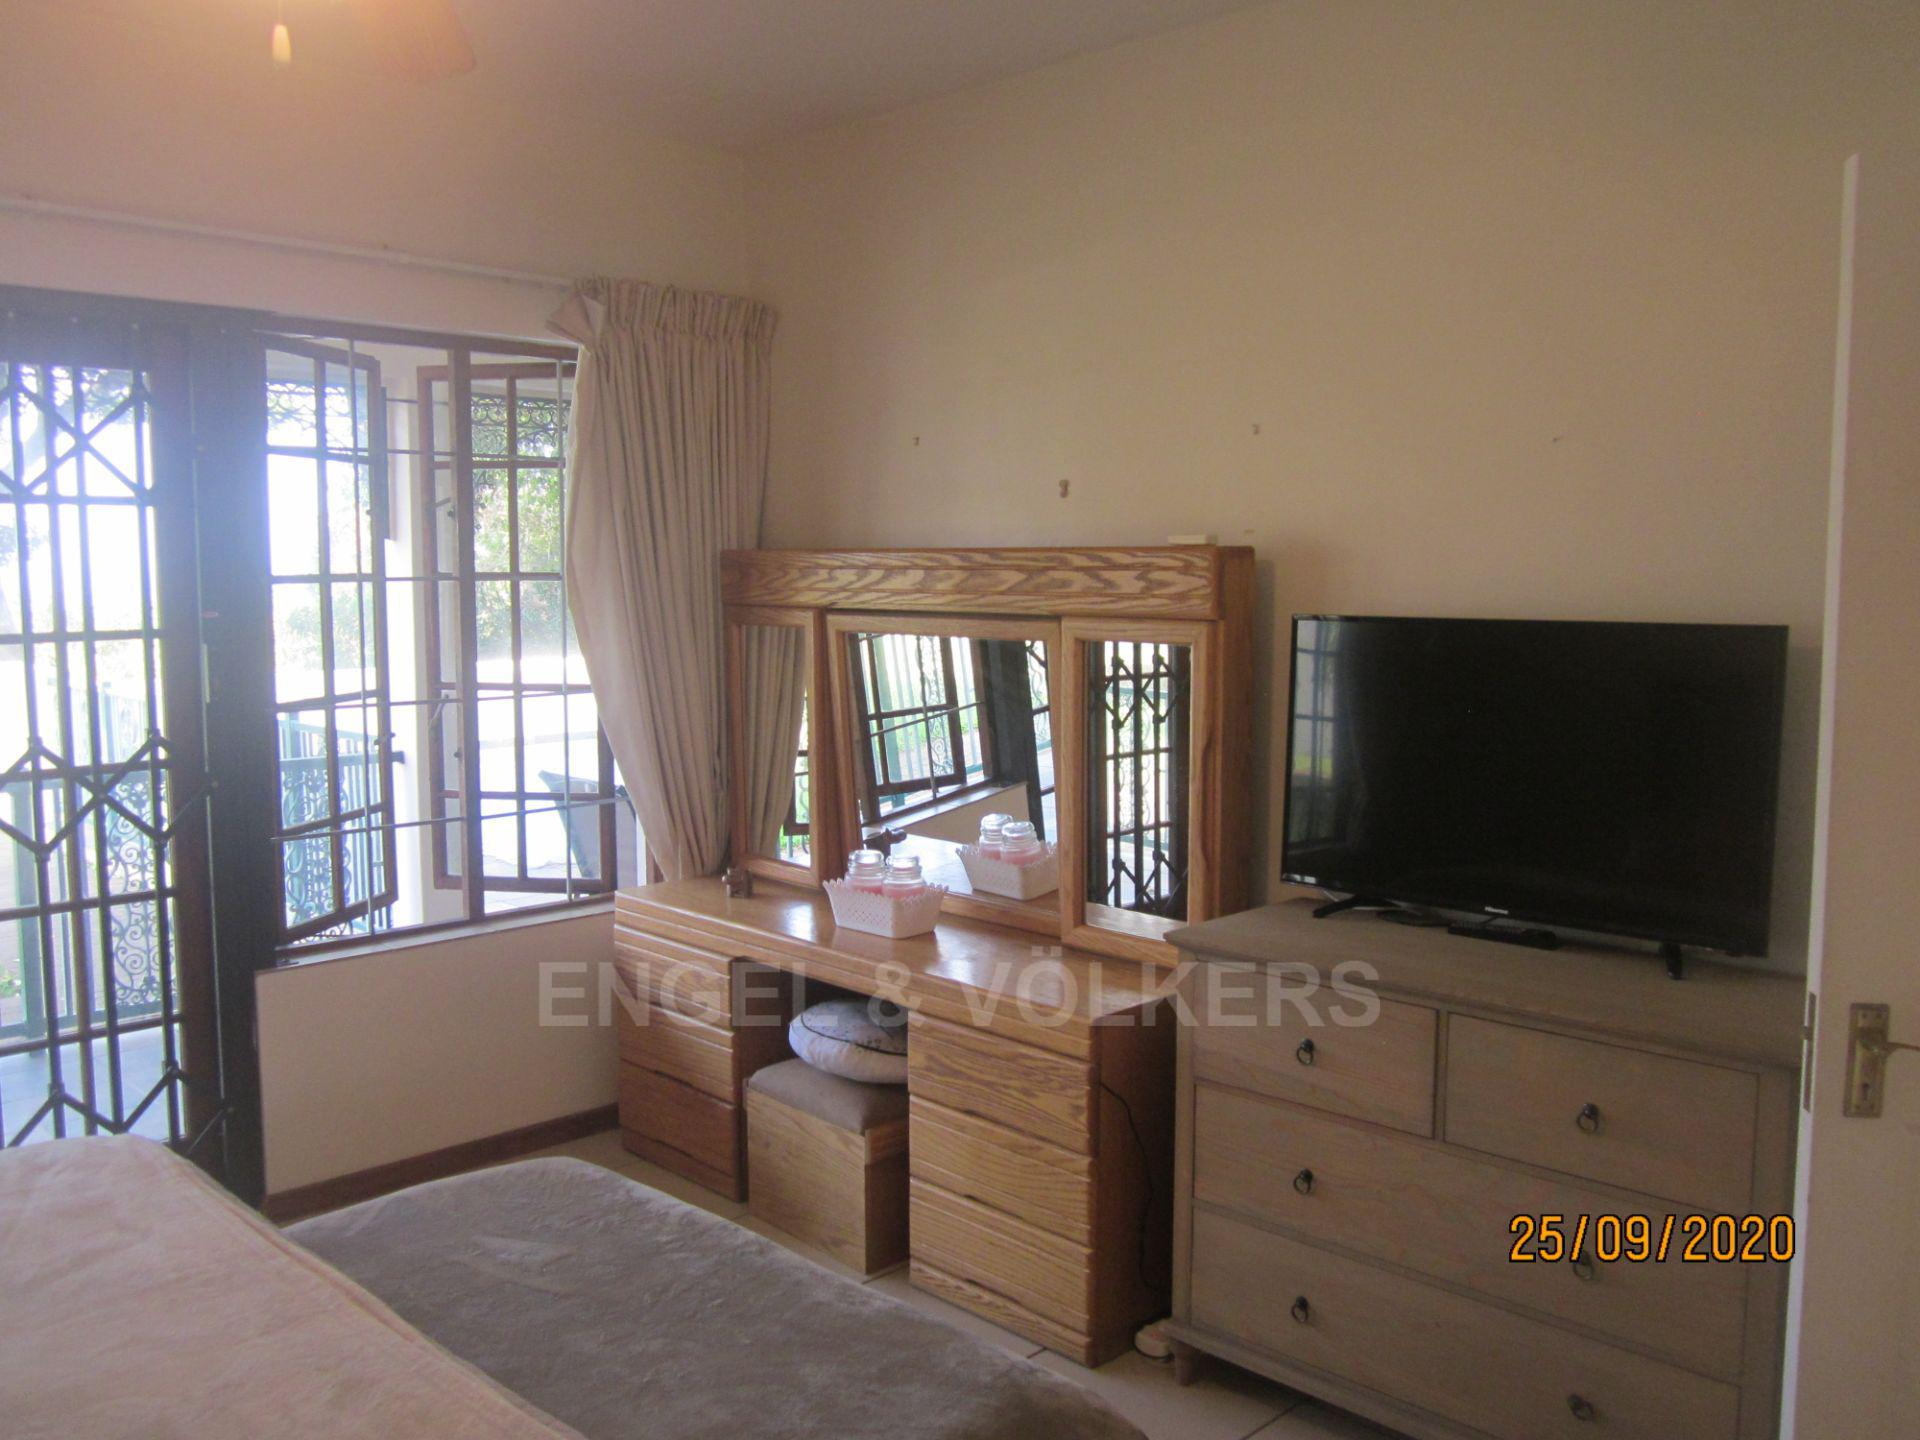 Apartment in Shelly Beach - Master Bedroom .